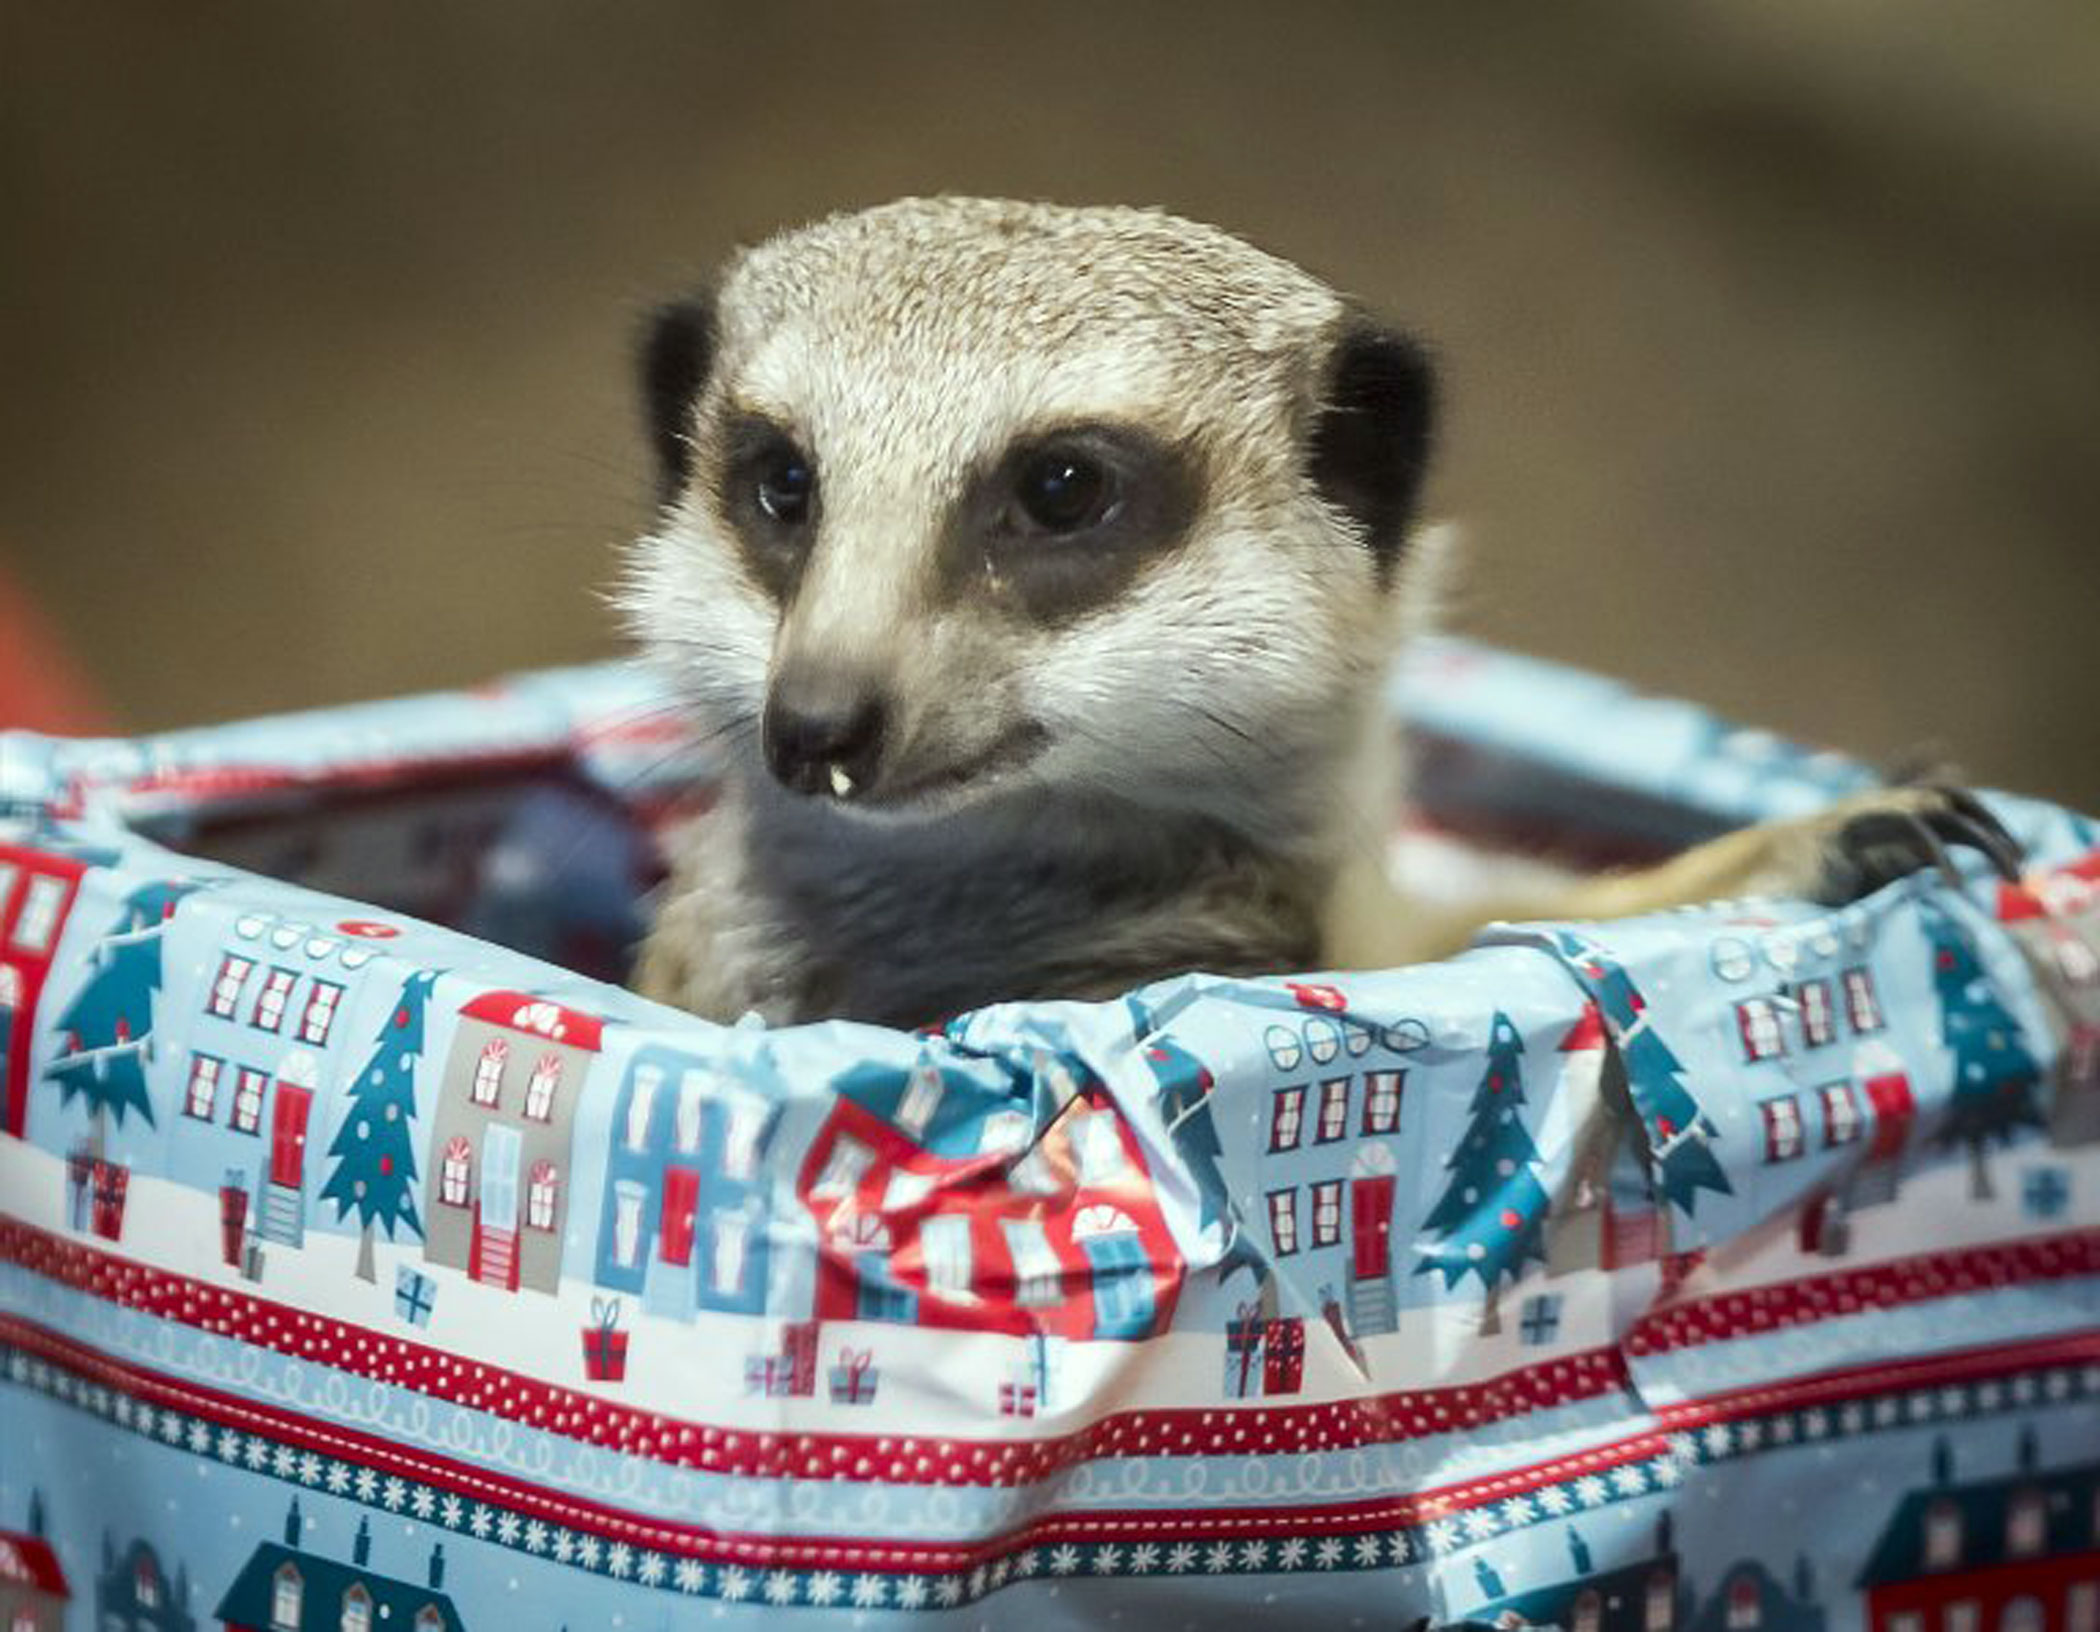 A meerkat at Edinburgh Zoo in Scotland peeks out from a package containing treats aboard a sleigh.